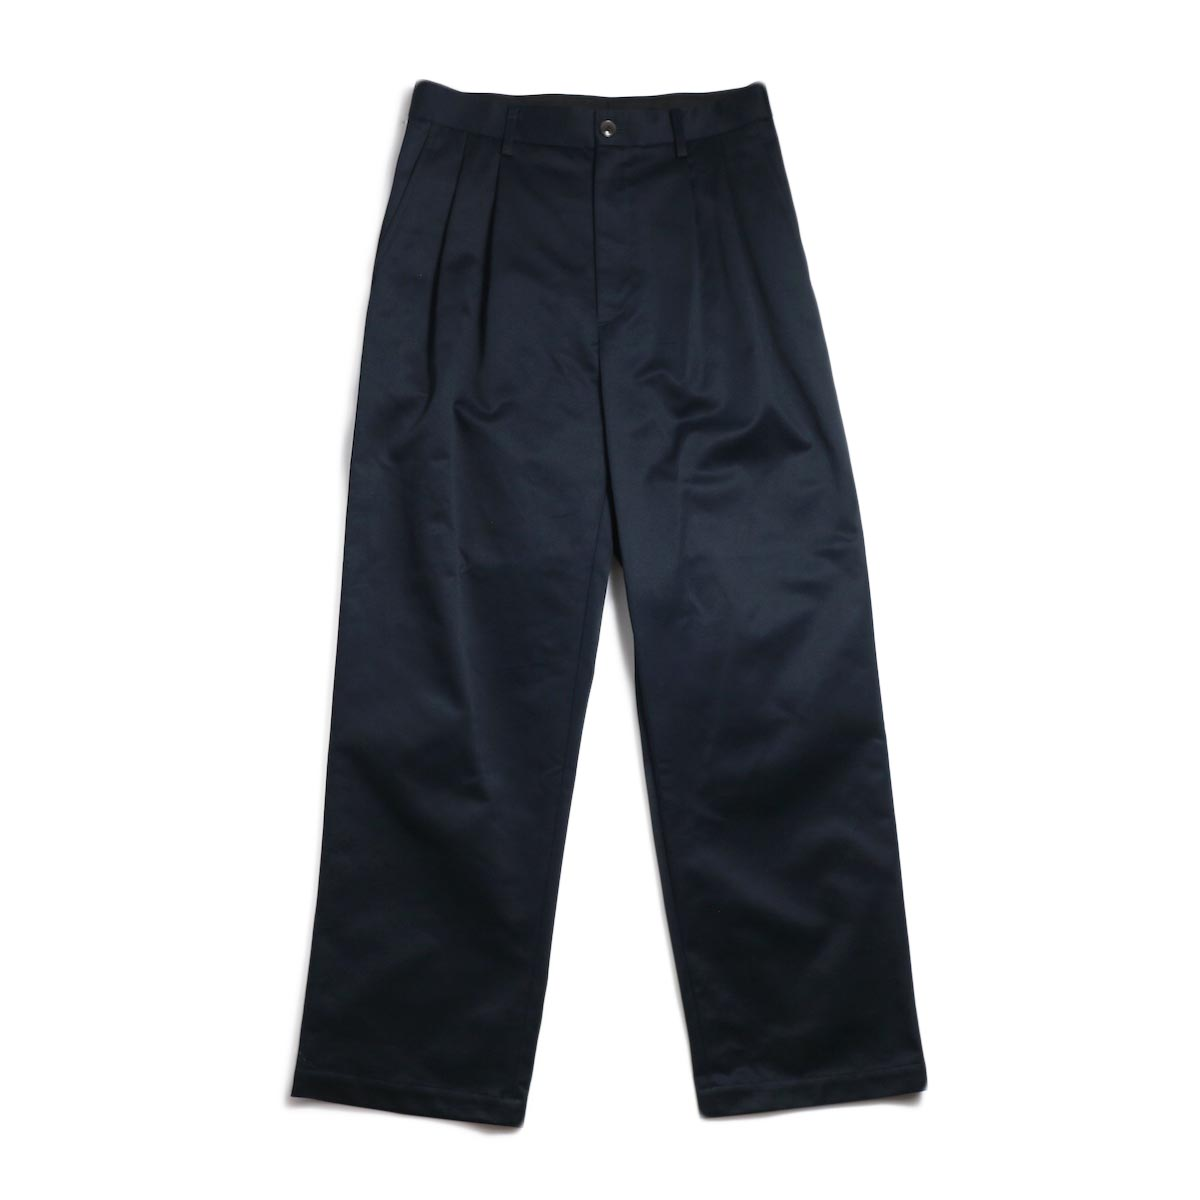 UNIVERSAL PRODUCTS / 2Tuck Wide Chino Pants -Navy